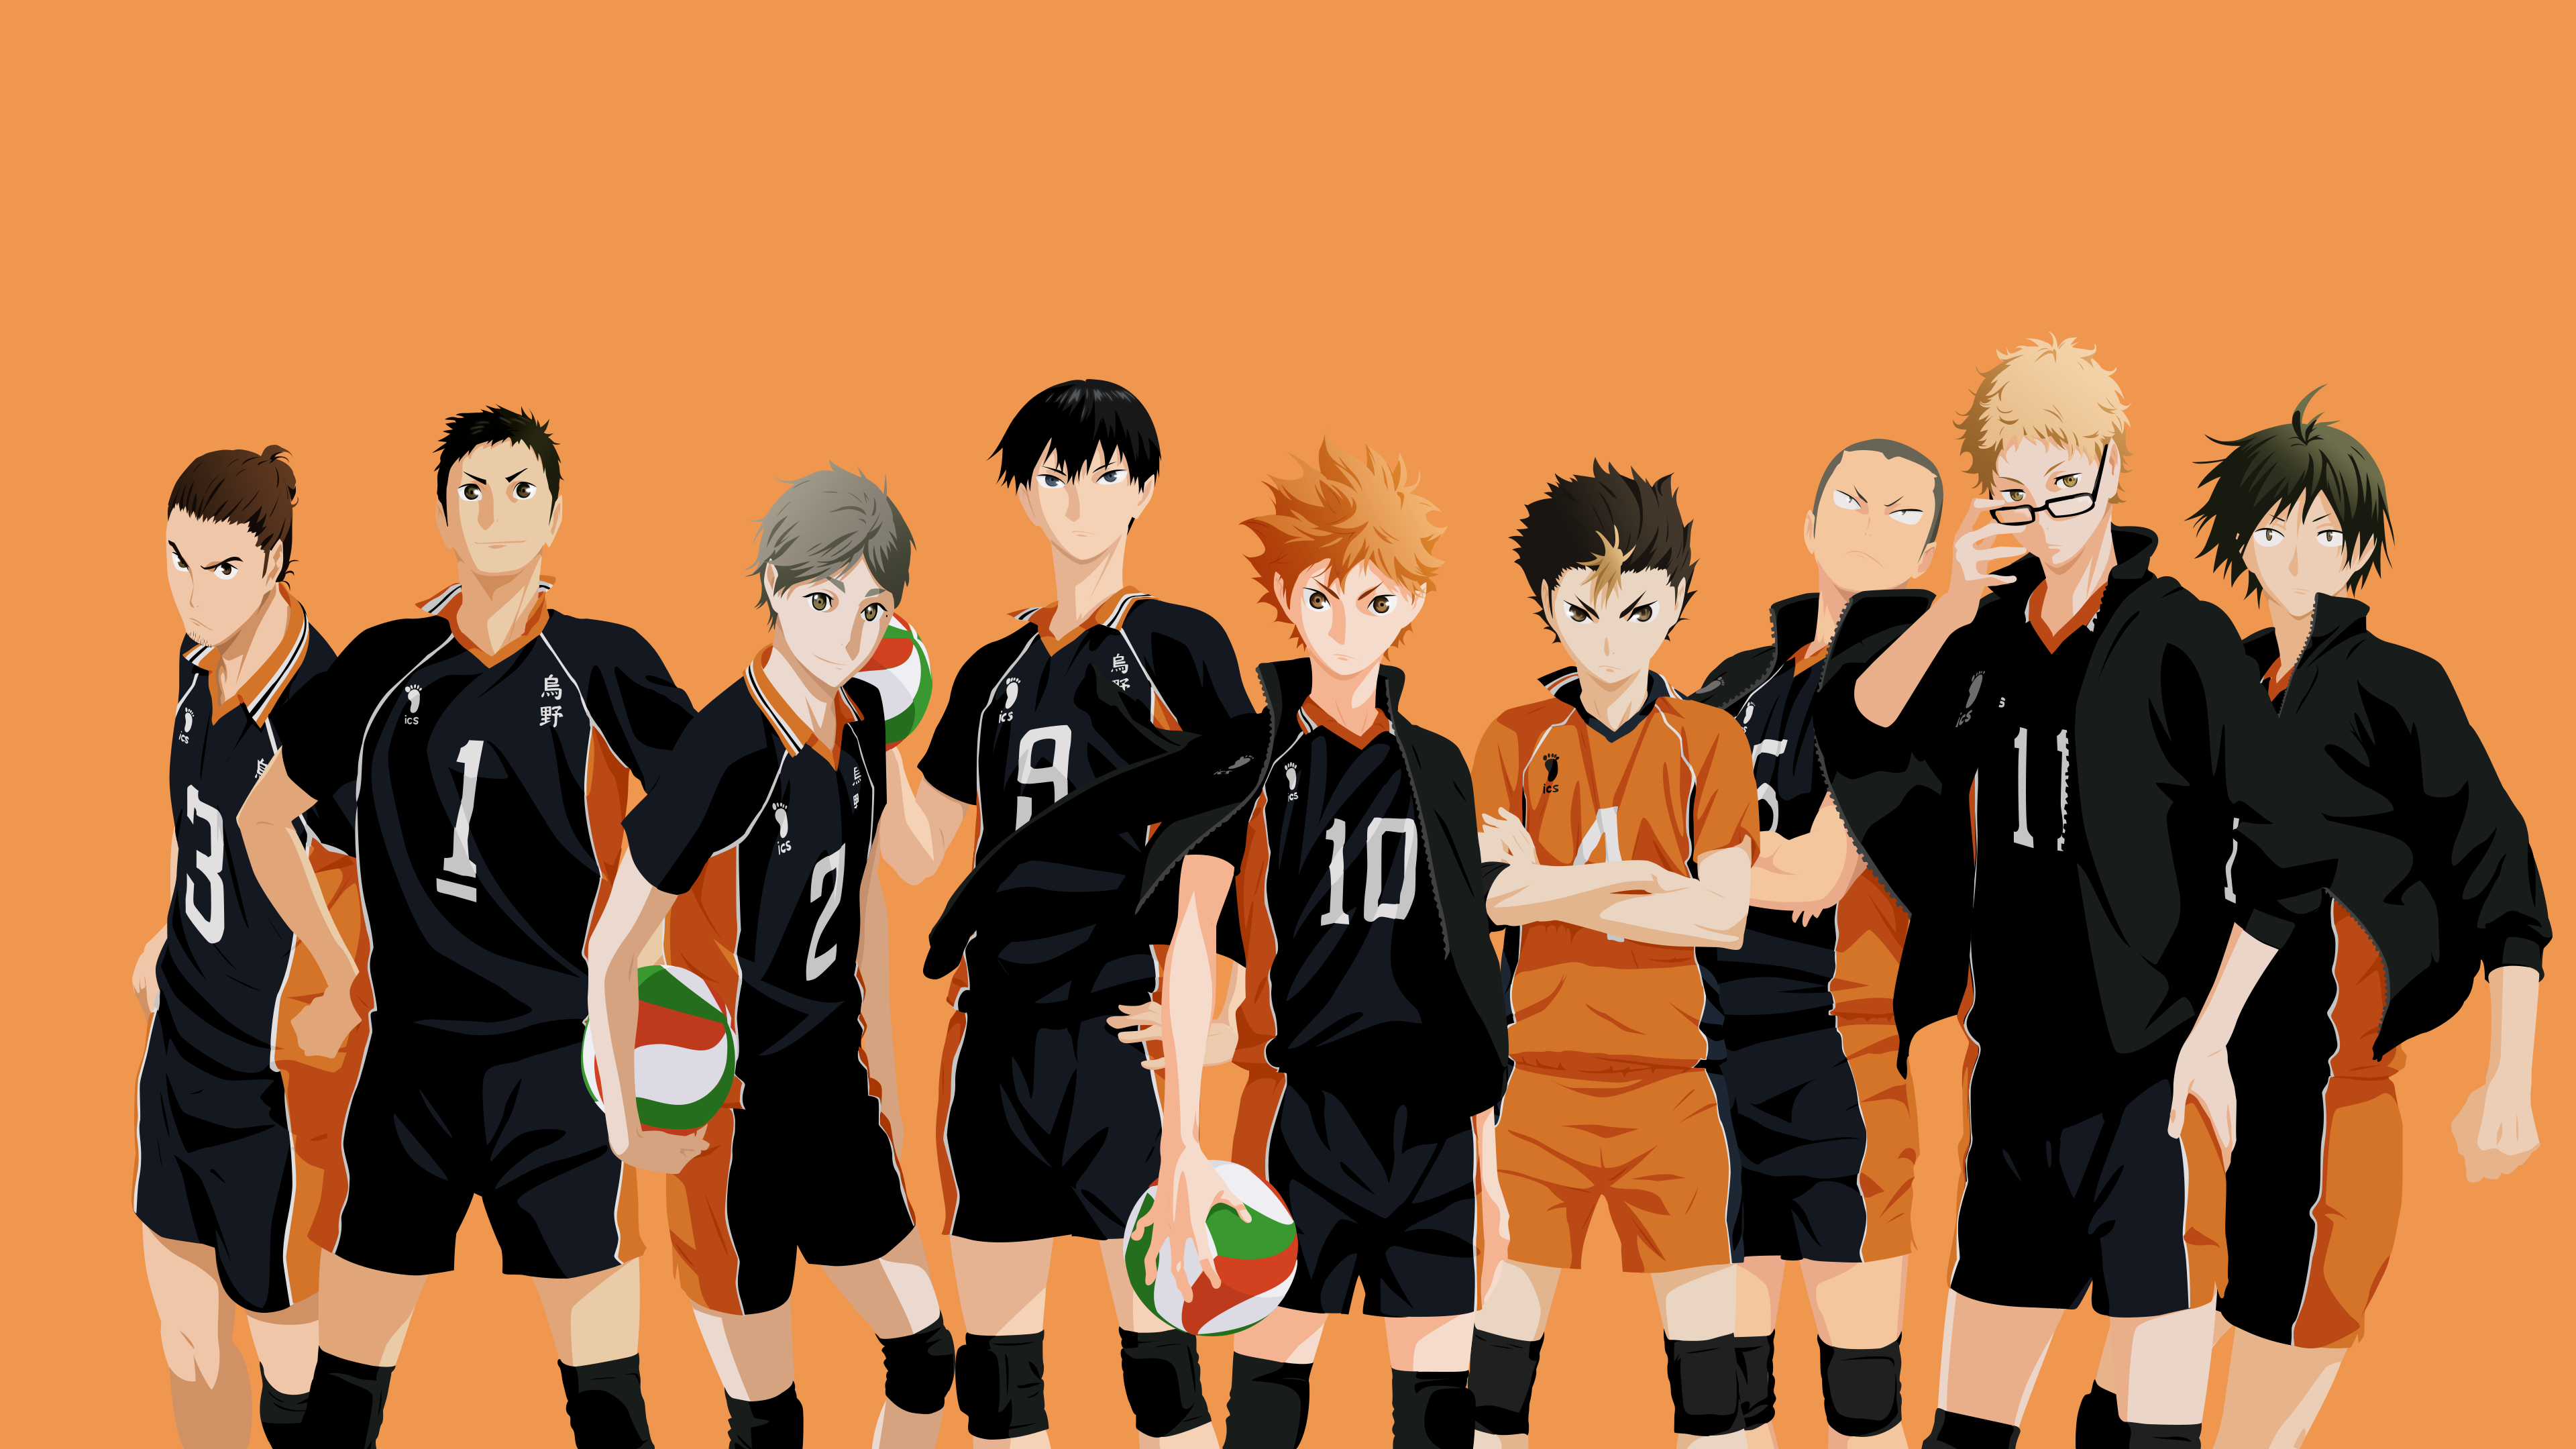 Karasuno Volleyball Team Desktop Wallpaper In 2020 Haikyuu Wallpaper Karasuno Haikyuu